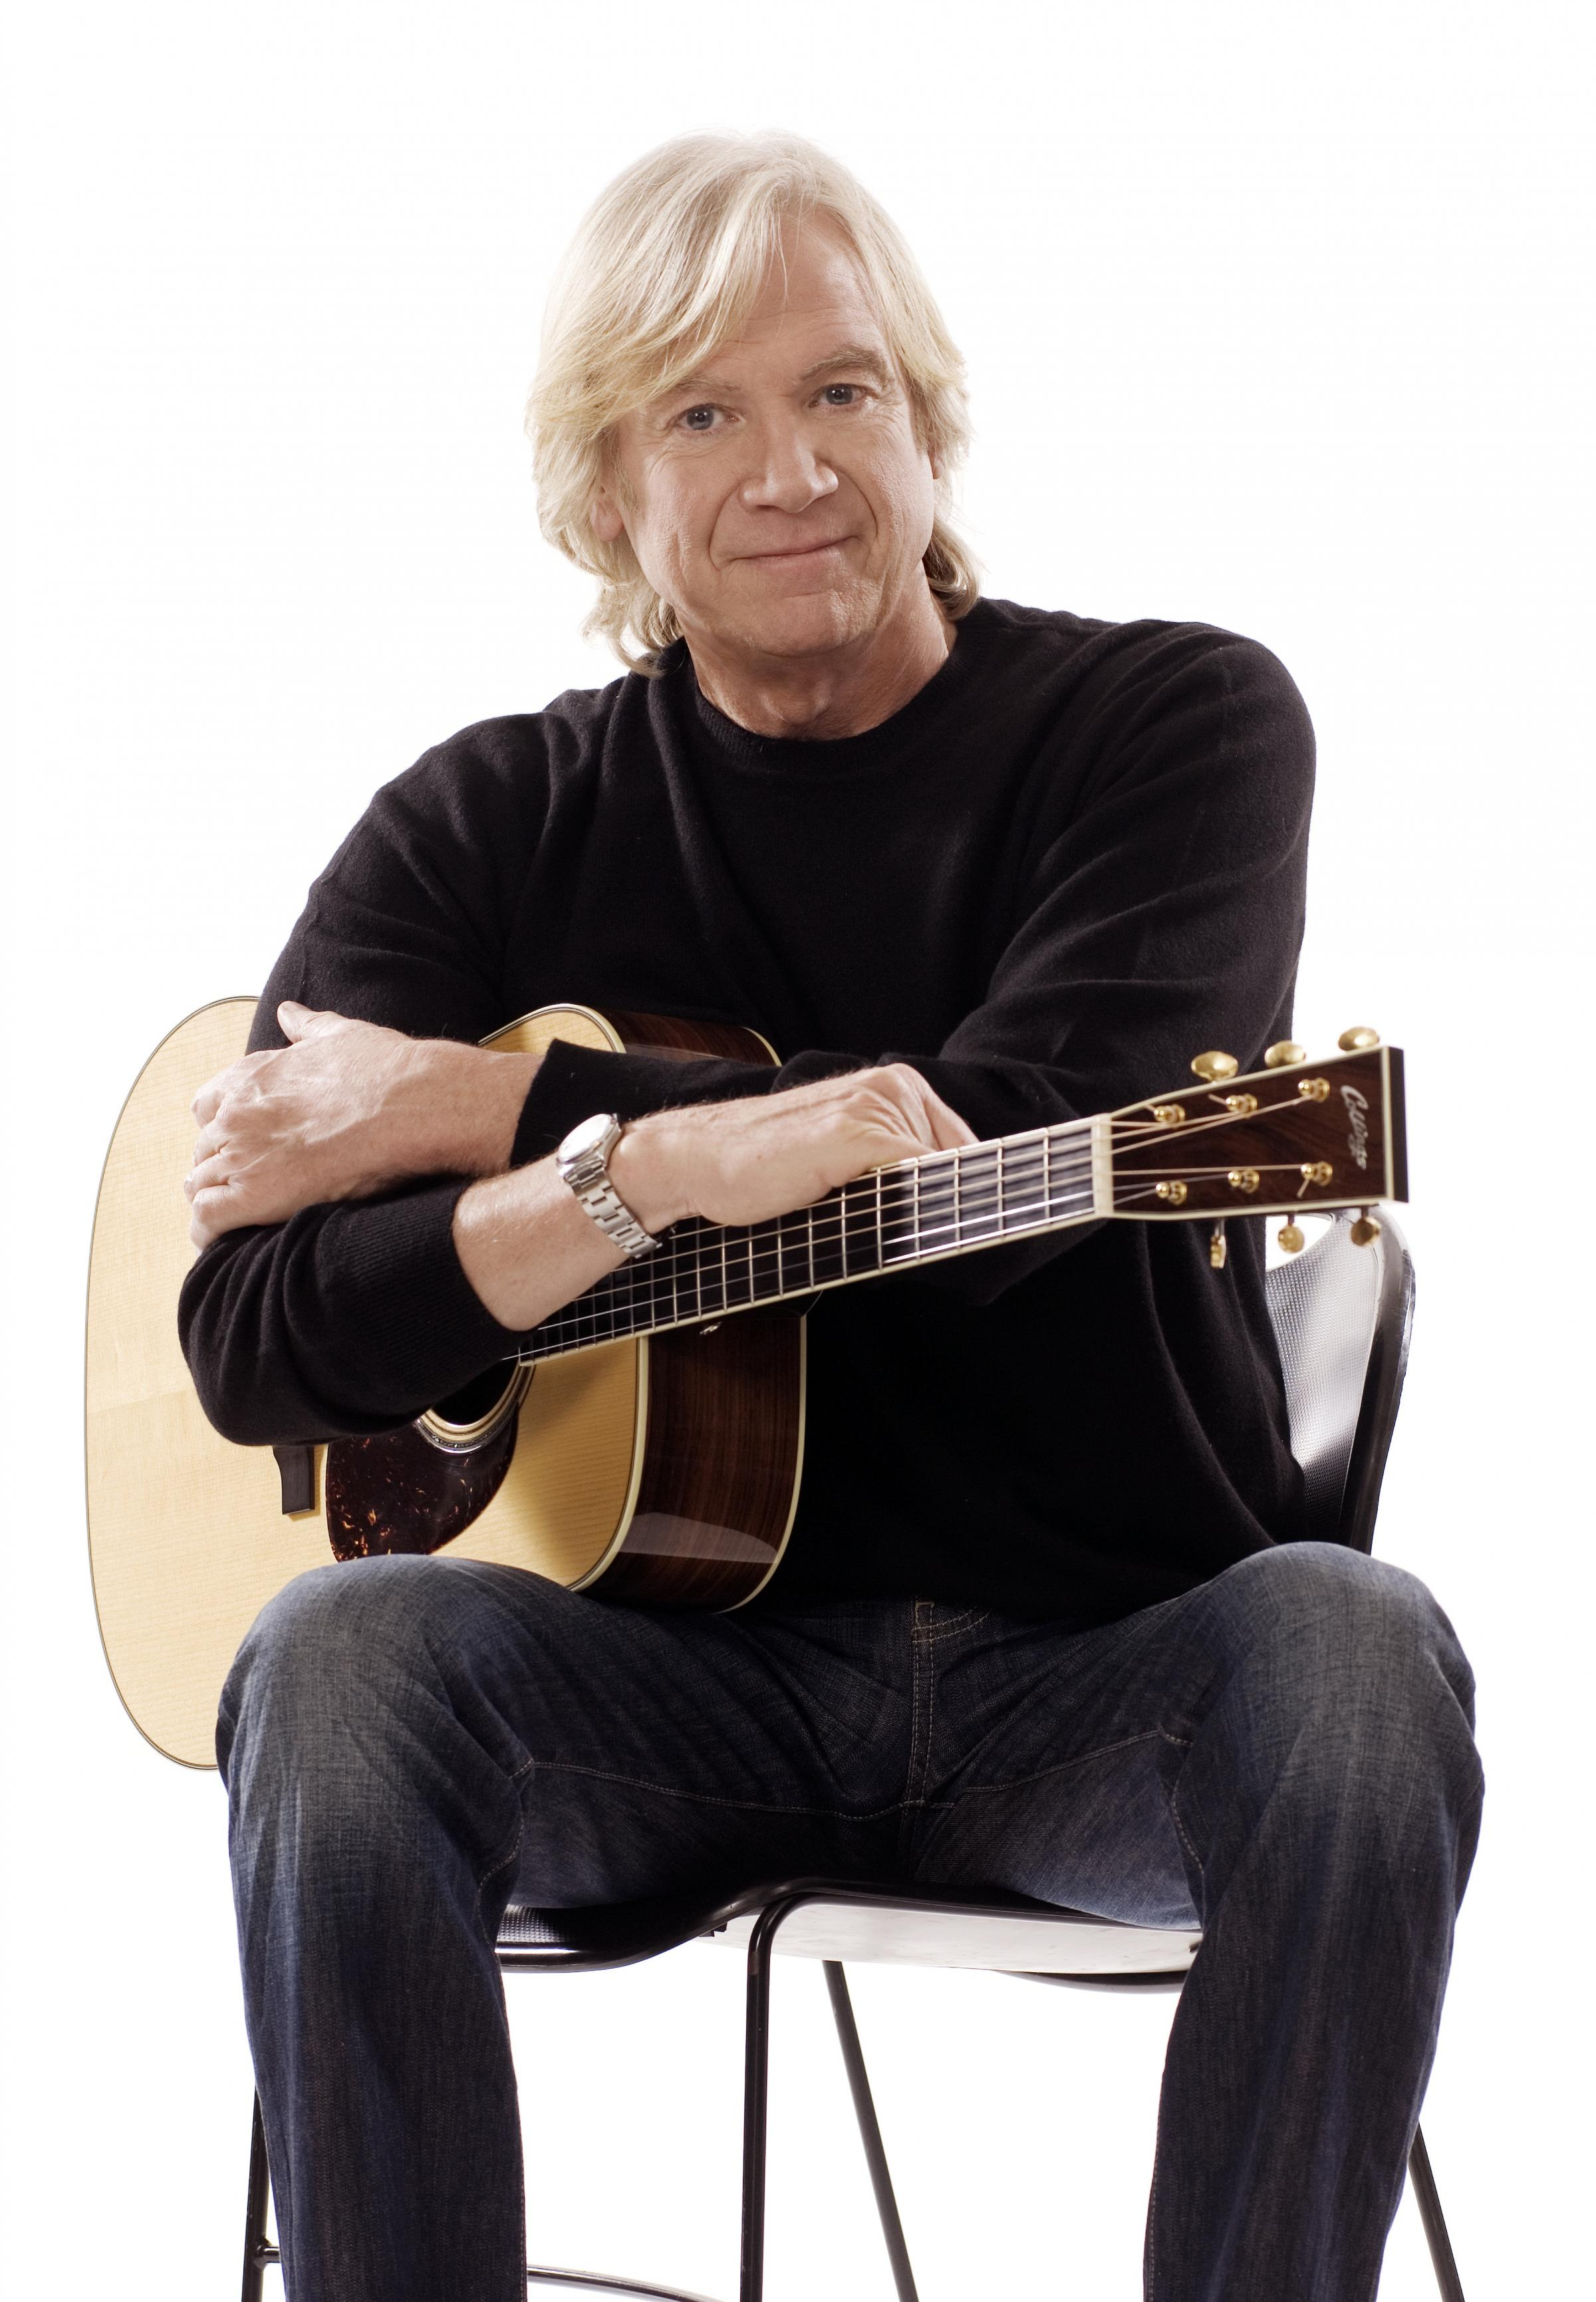 Justin Hayward will perform at Liverpool Philharmonic Hall on October 1